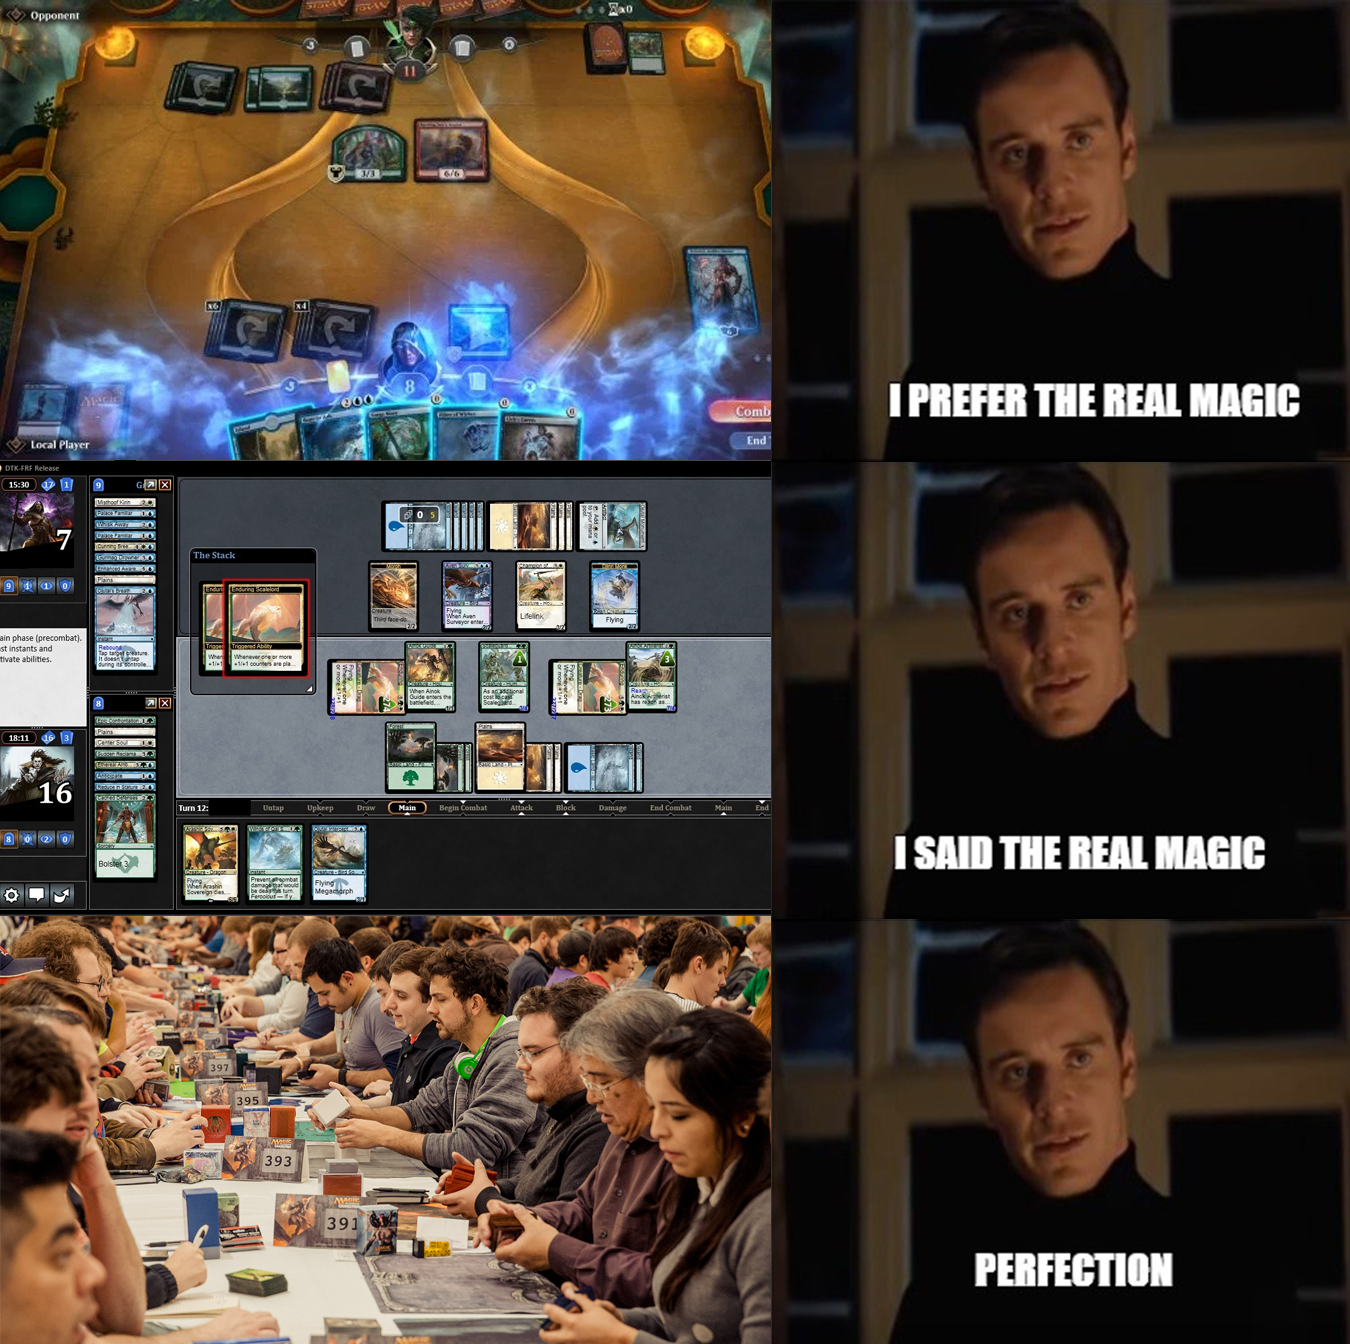 Gamasutra: Diego Ricchiuti's Blog - Magic Arena is not Magic